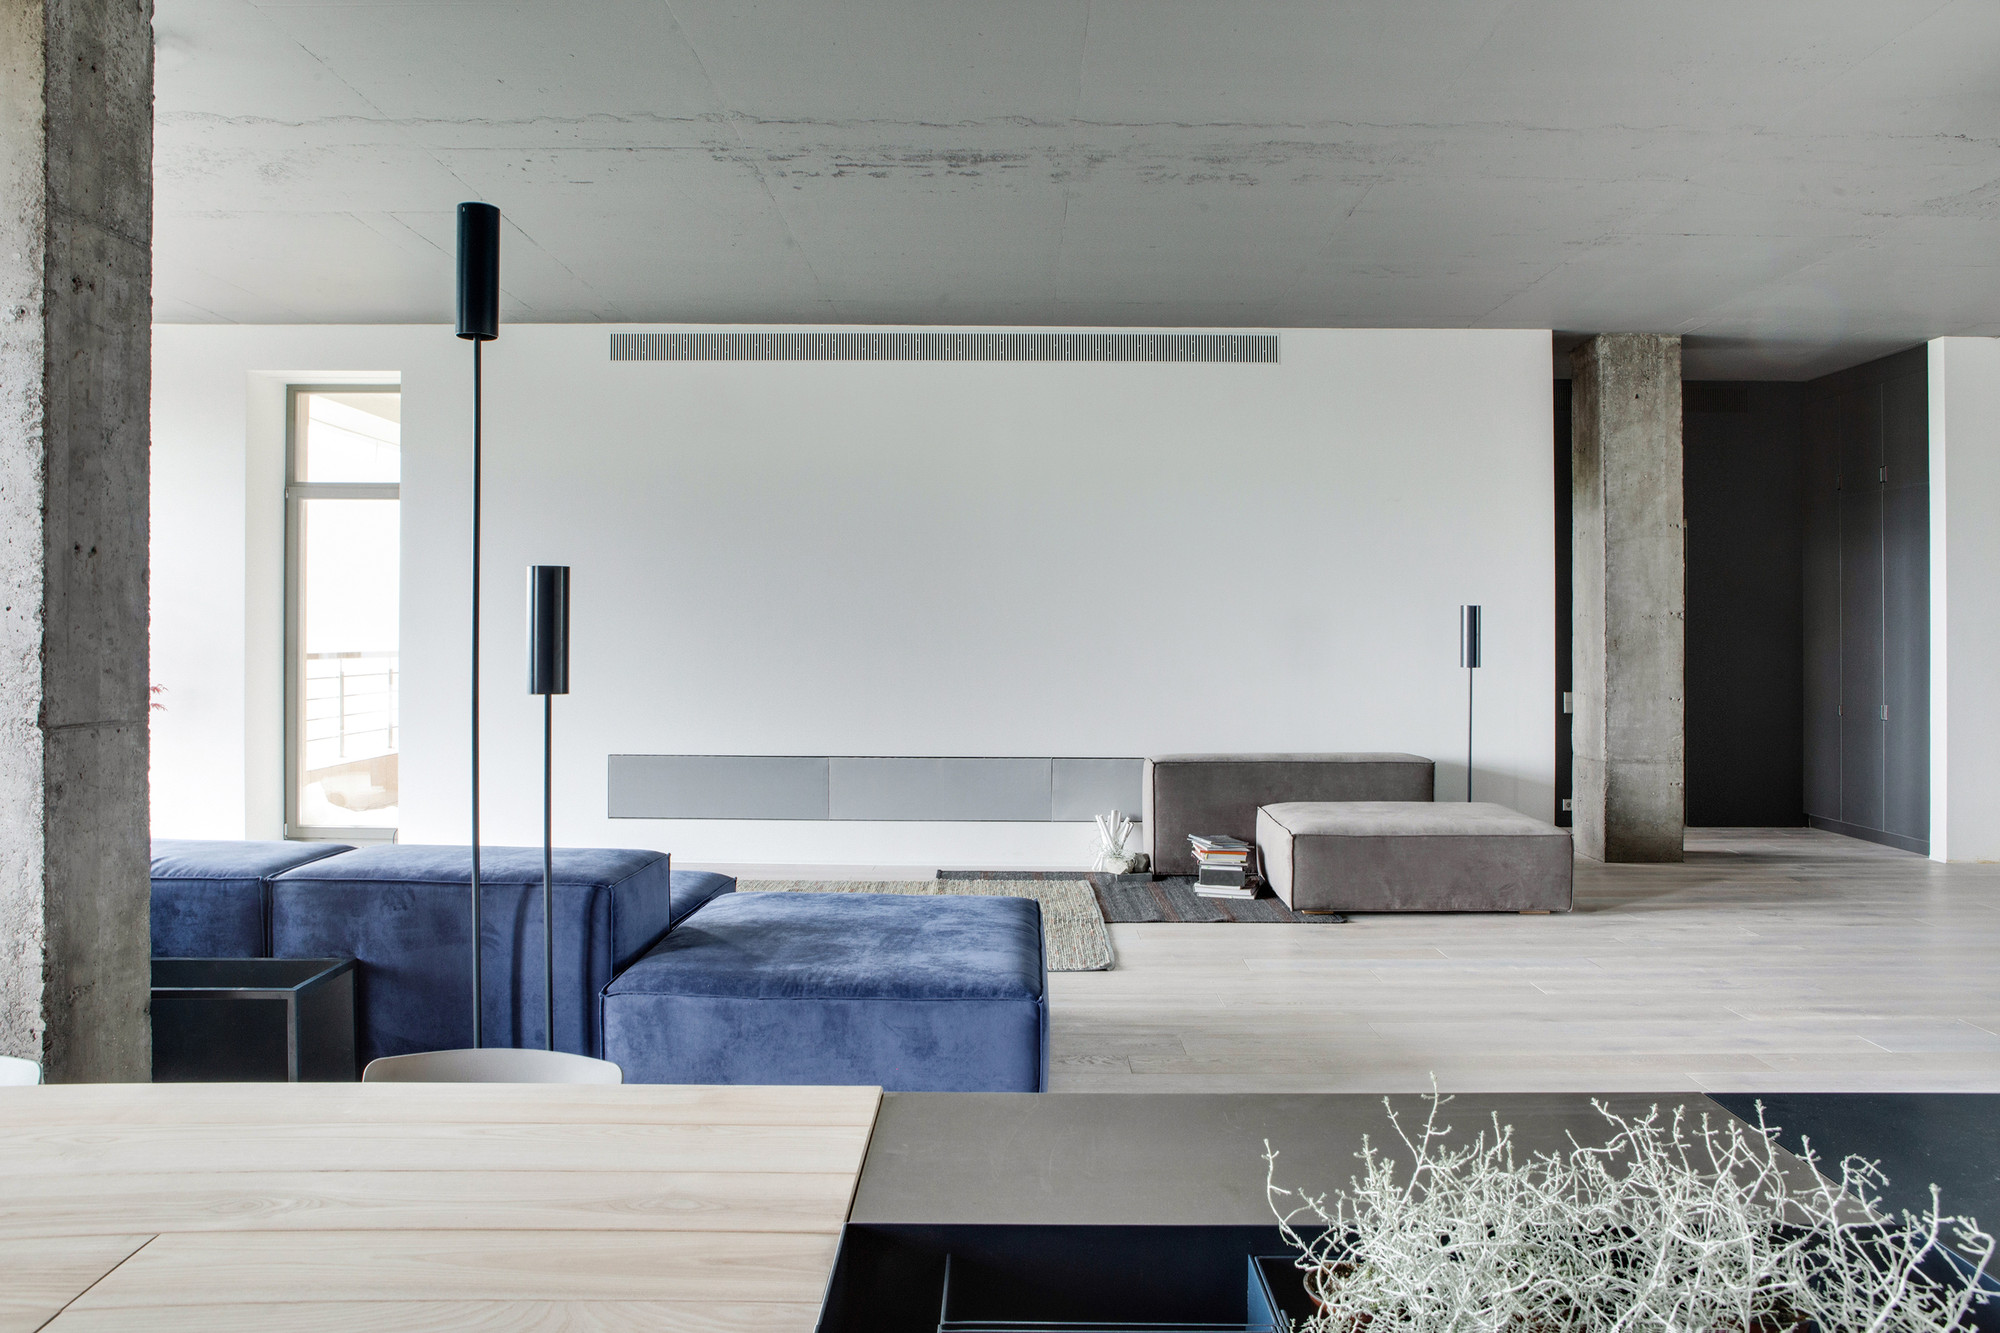 Gallery of 32nd apartment / 2B.group - 15